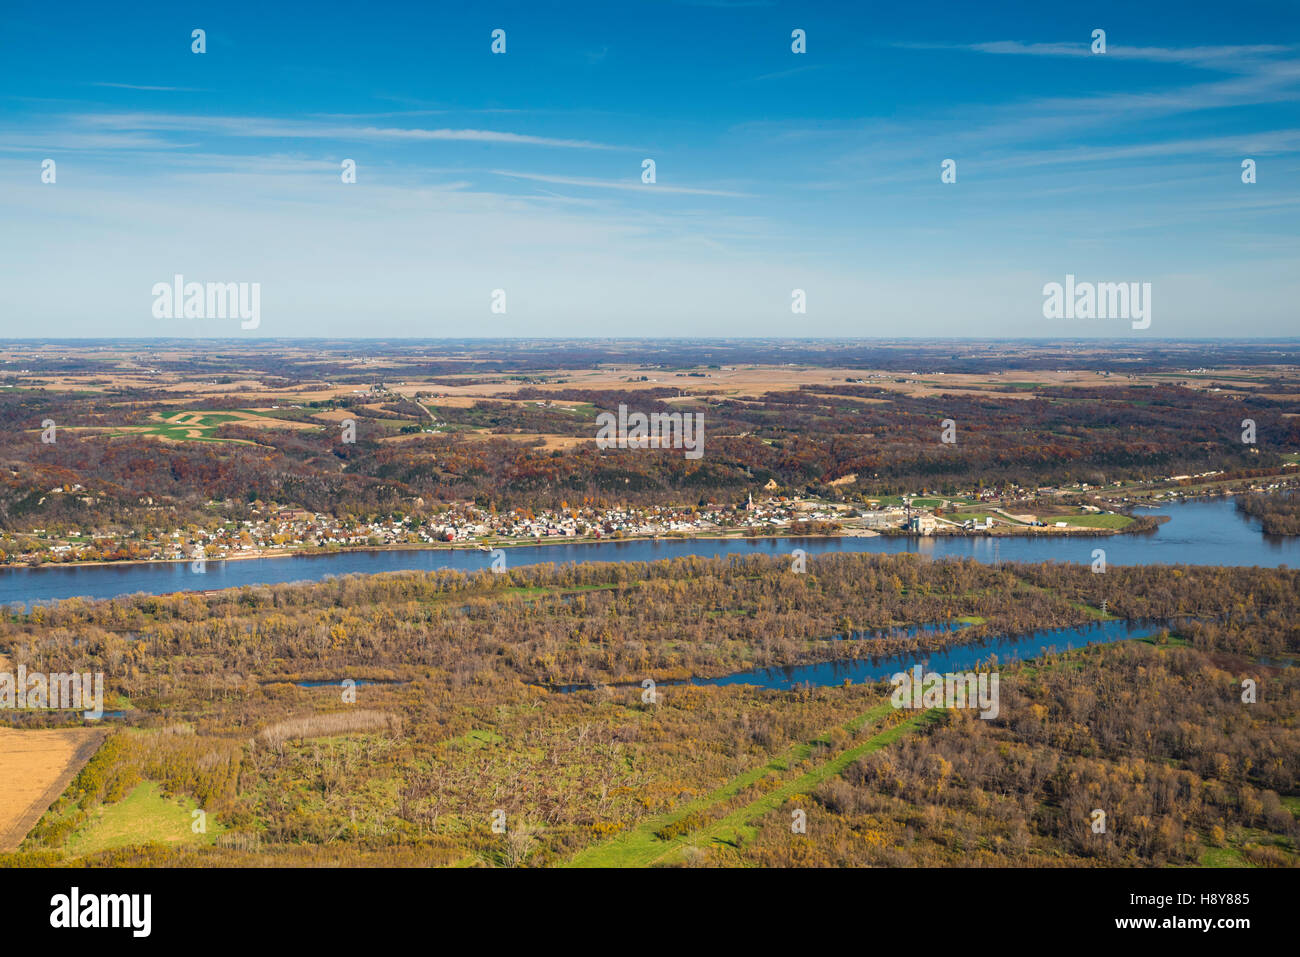 Aerial view of Wisconsin farm lands and Casseville  looking eastward from the Iowa side of the Mississippi River. - Stock Image